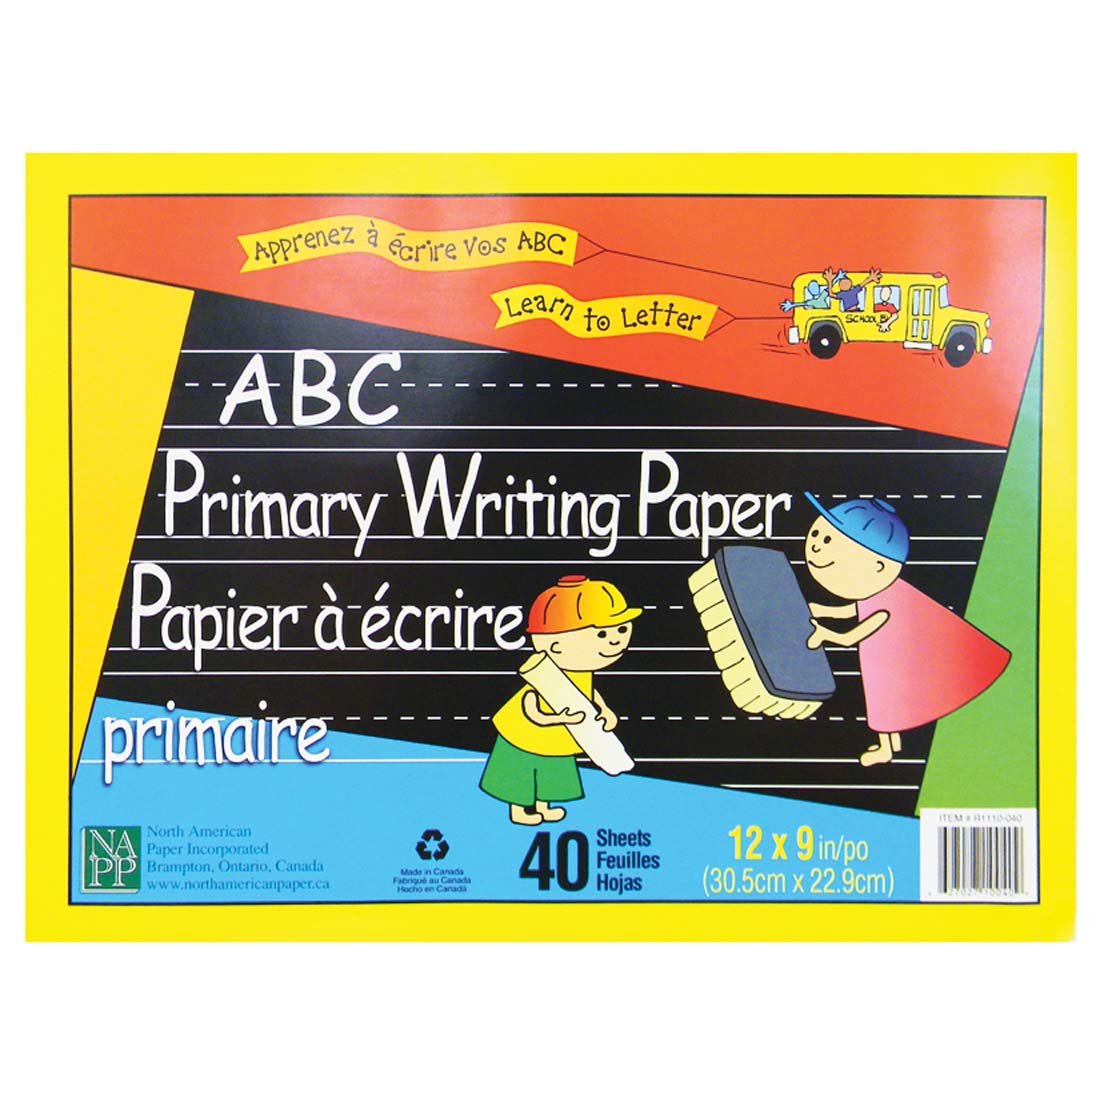 View ABC PRIMARY WRITING PADS 40 SHEETS  12  X 9 INCH